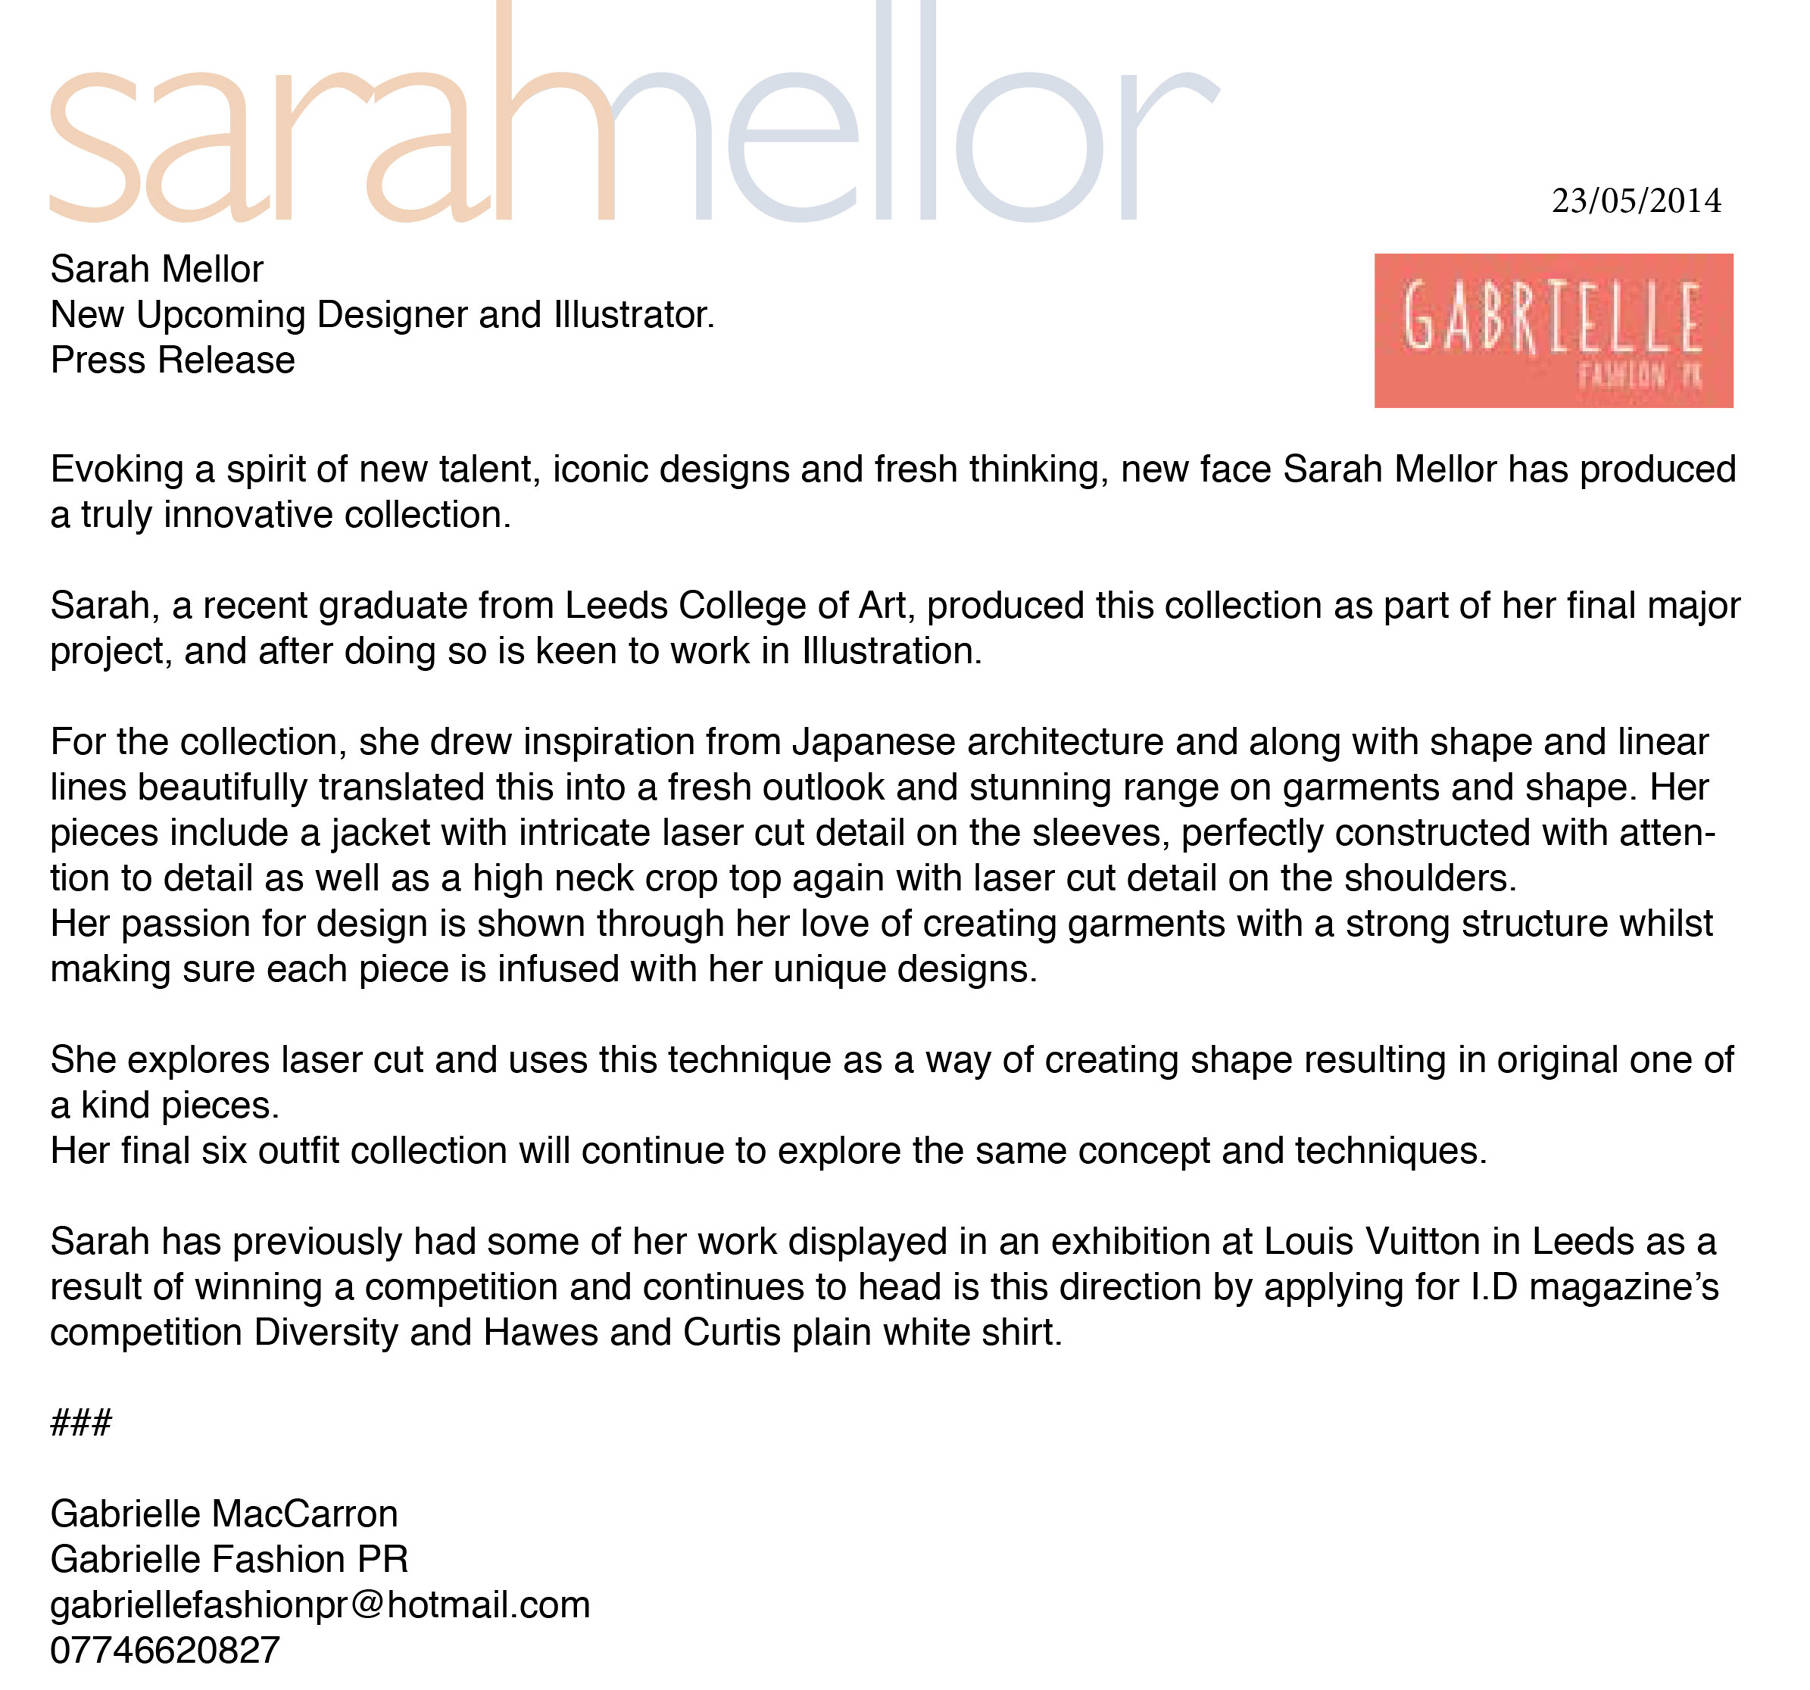 Sarah Mellor Fashion Designer Gabrielle Fashion Pr